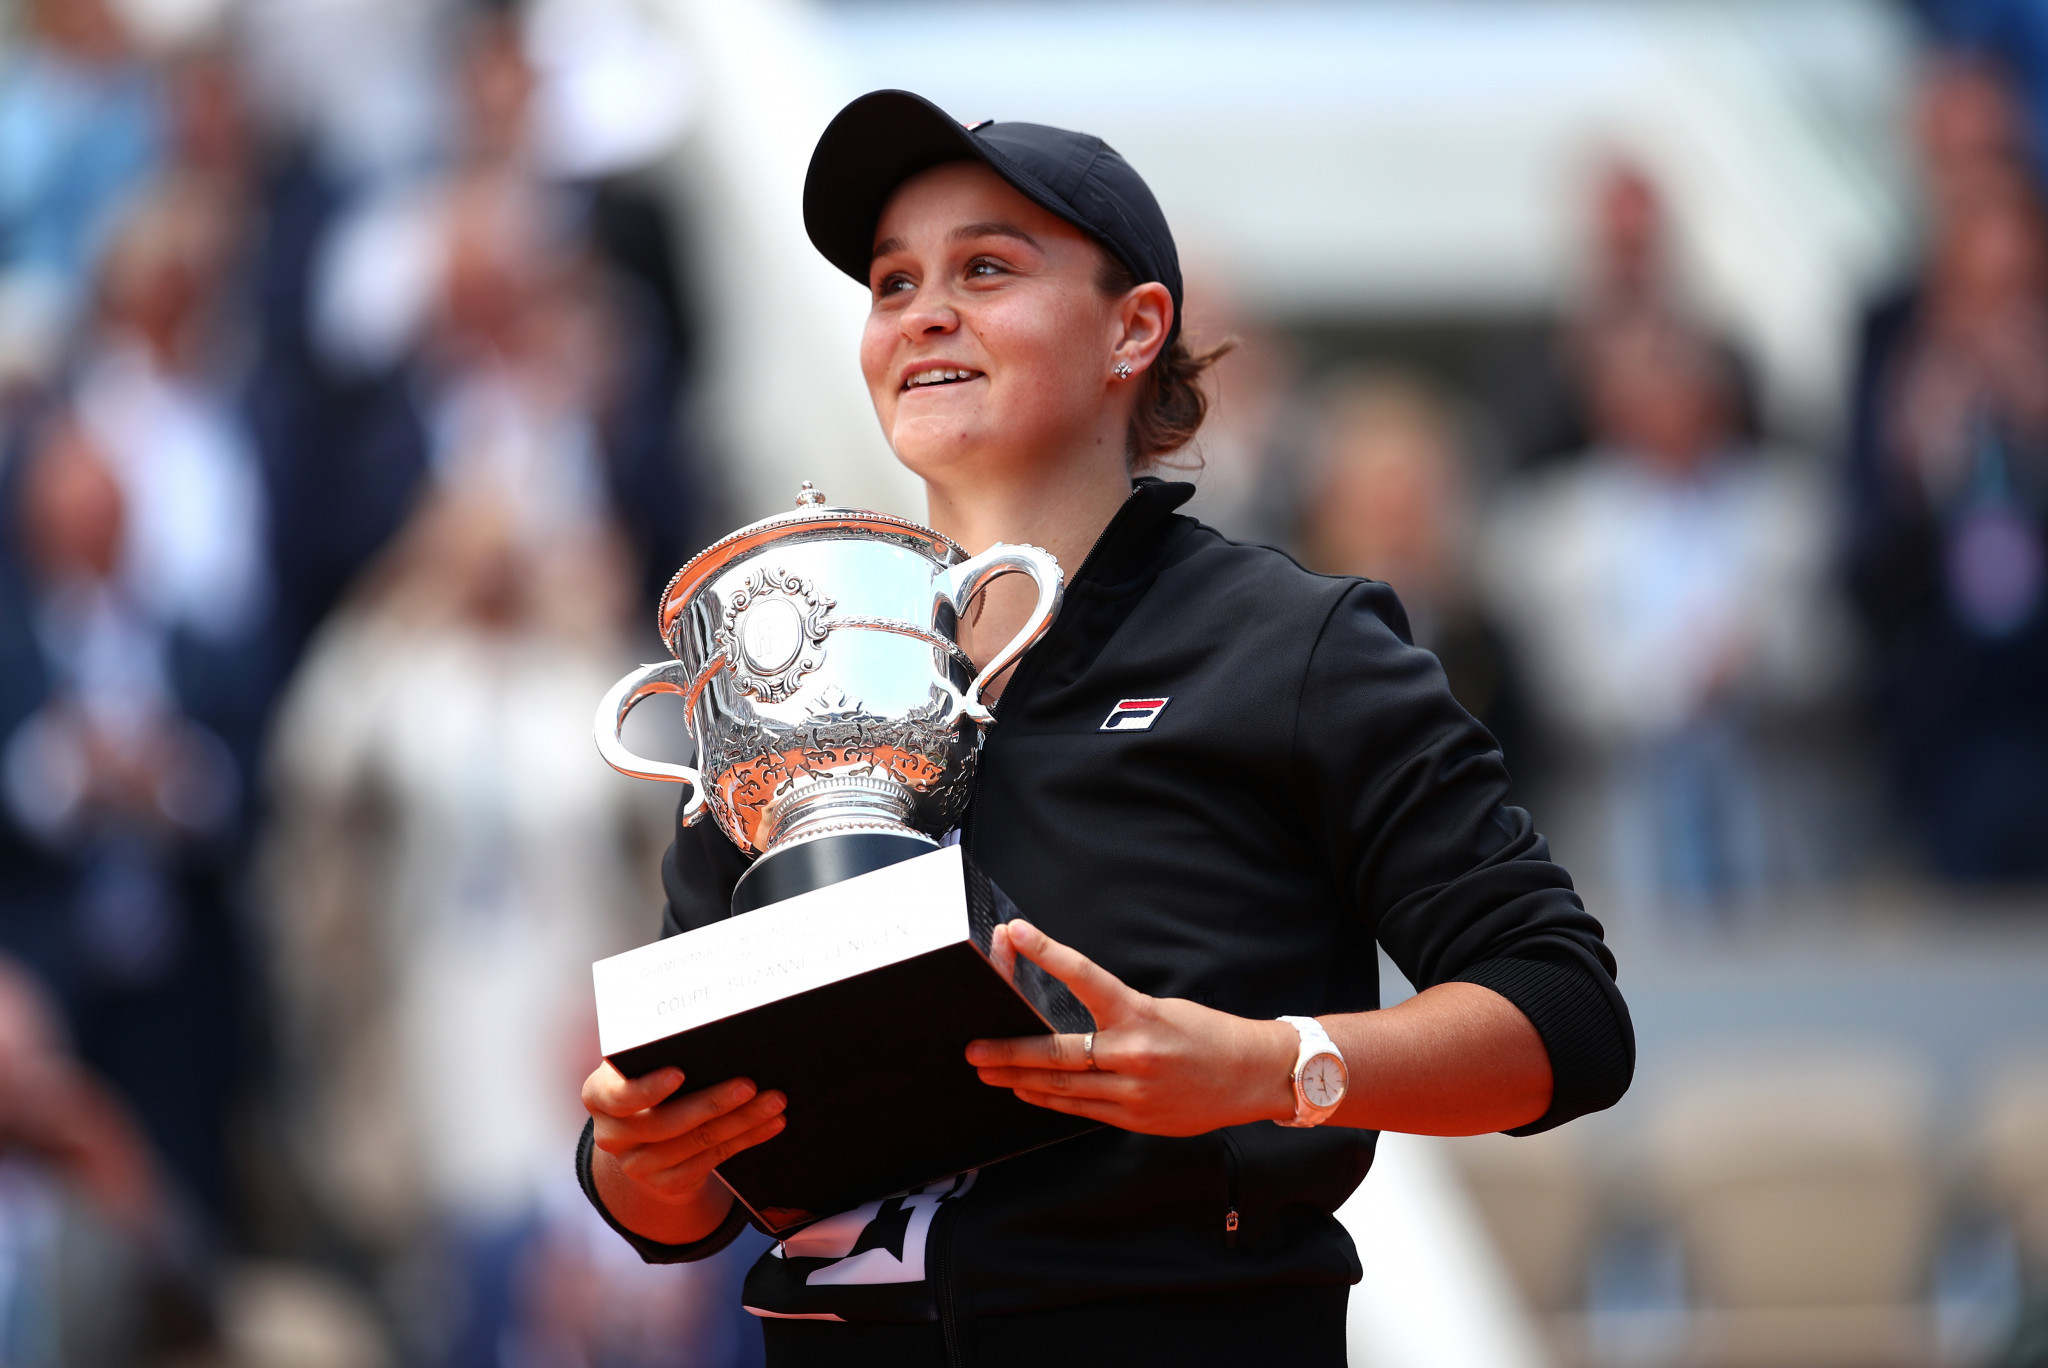 Eighth seed Barty cruises to French Open crown as Thiem sets up Nadal rematch